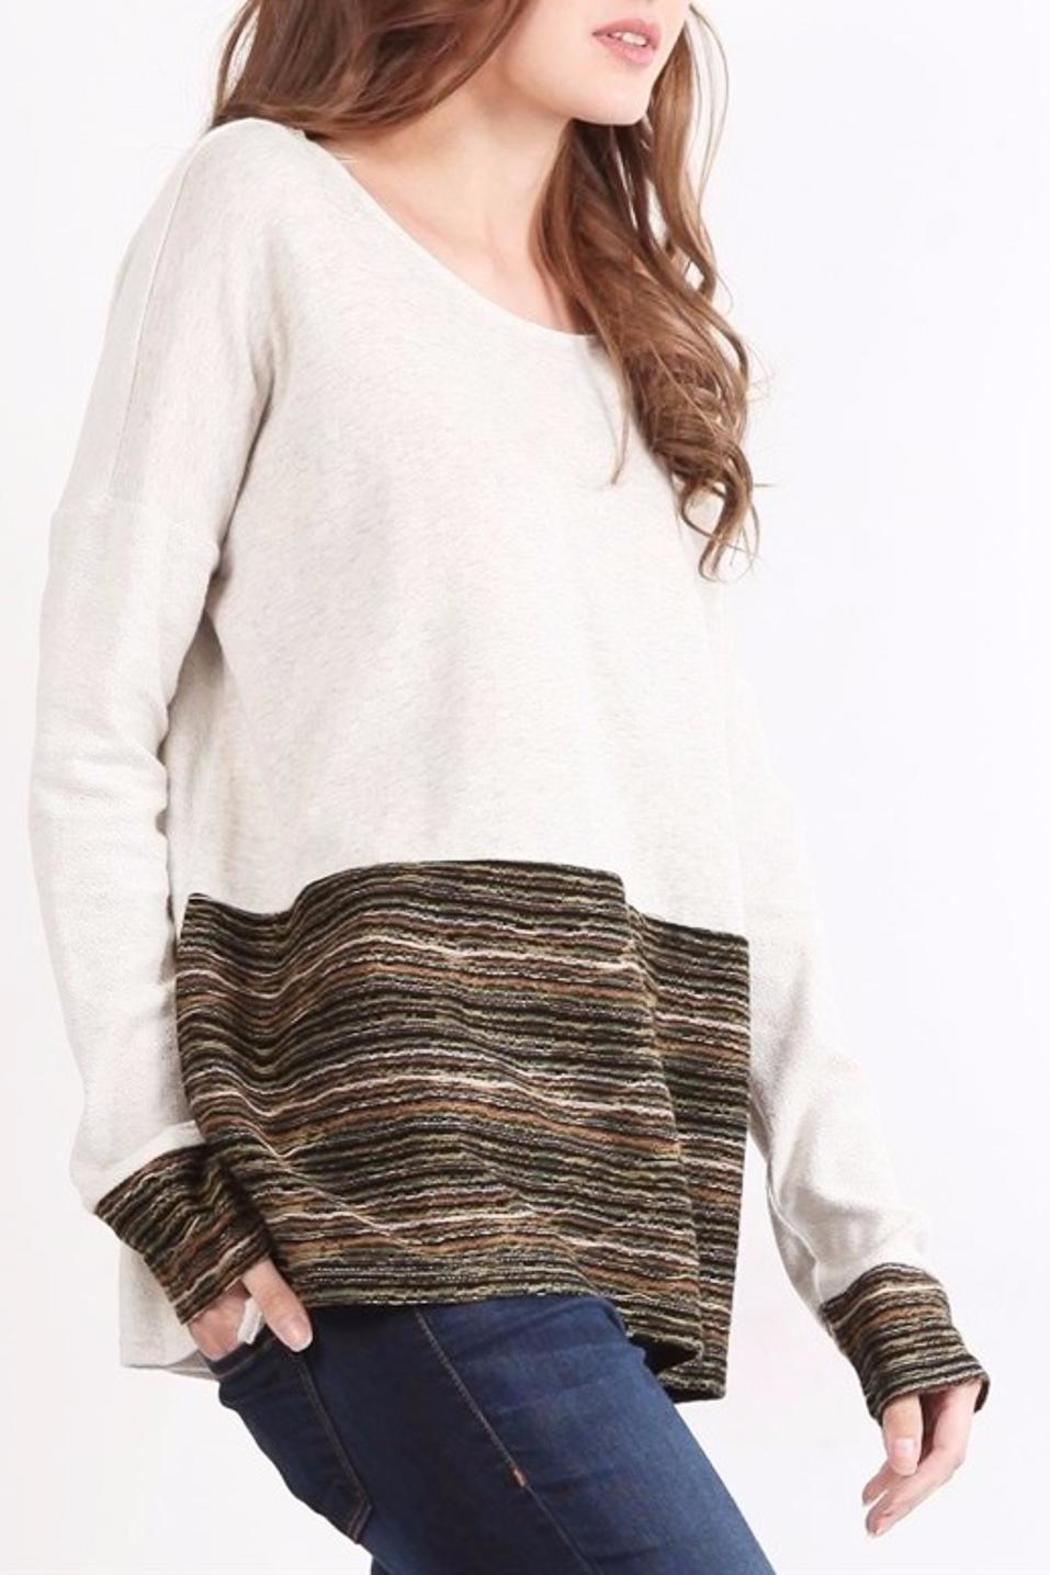 People Outfitter Girl Talk Top - Main Image